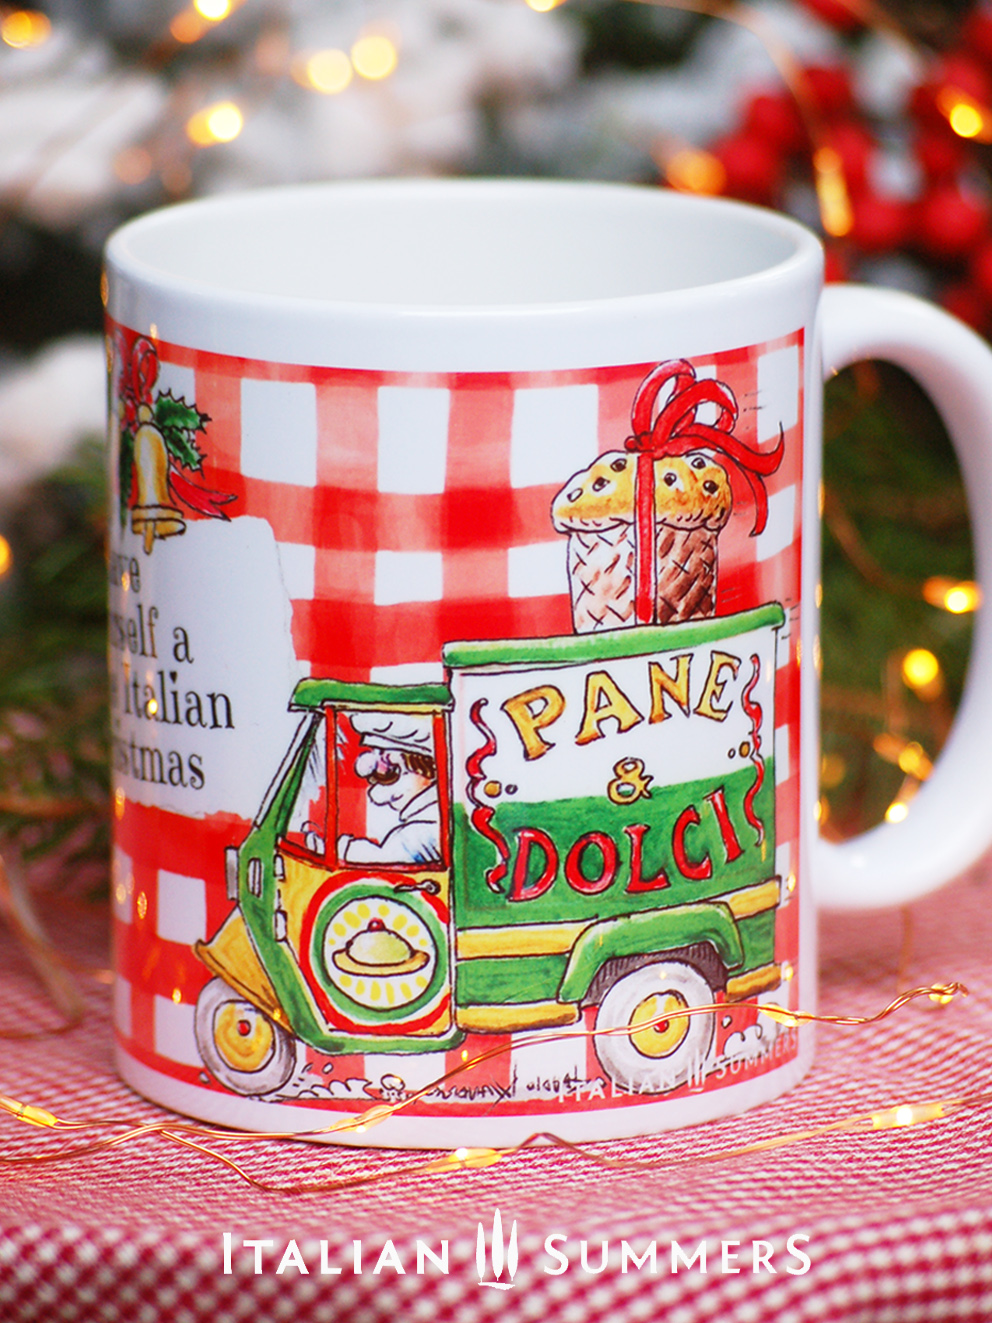 Christmas Coffee Mugs.Italian Christmas Mug Pane E Dolci